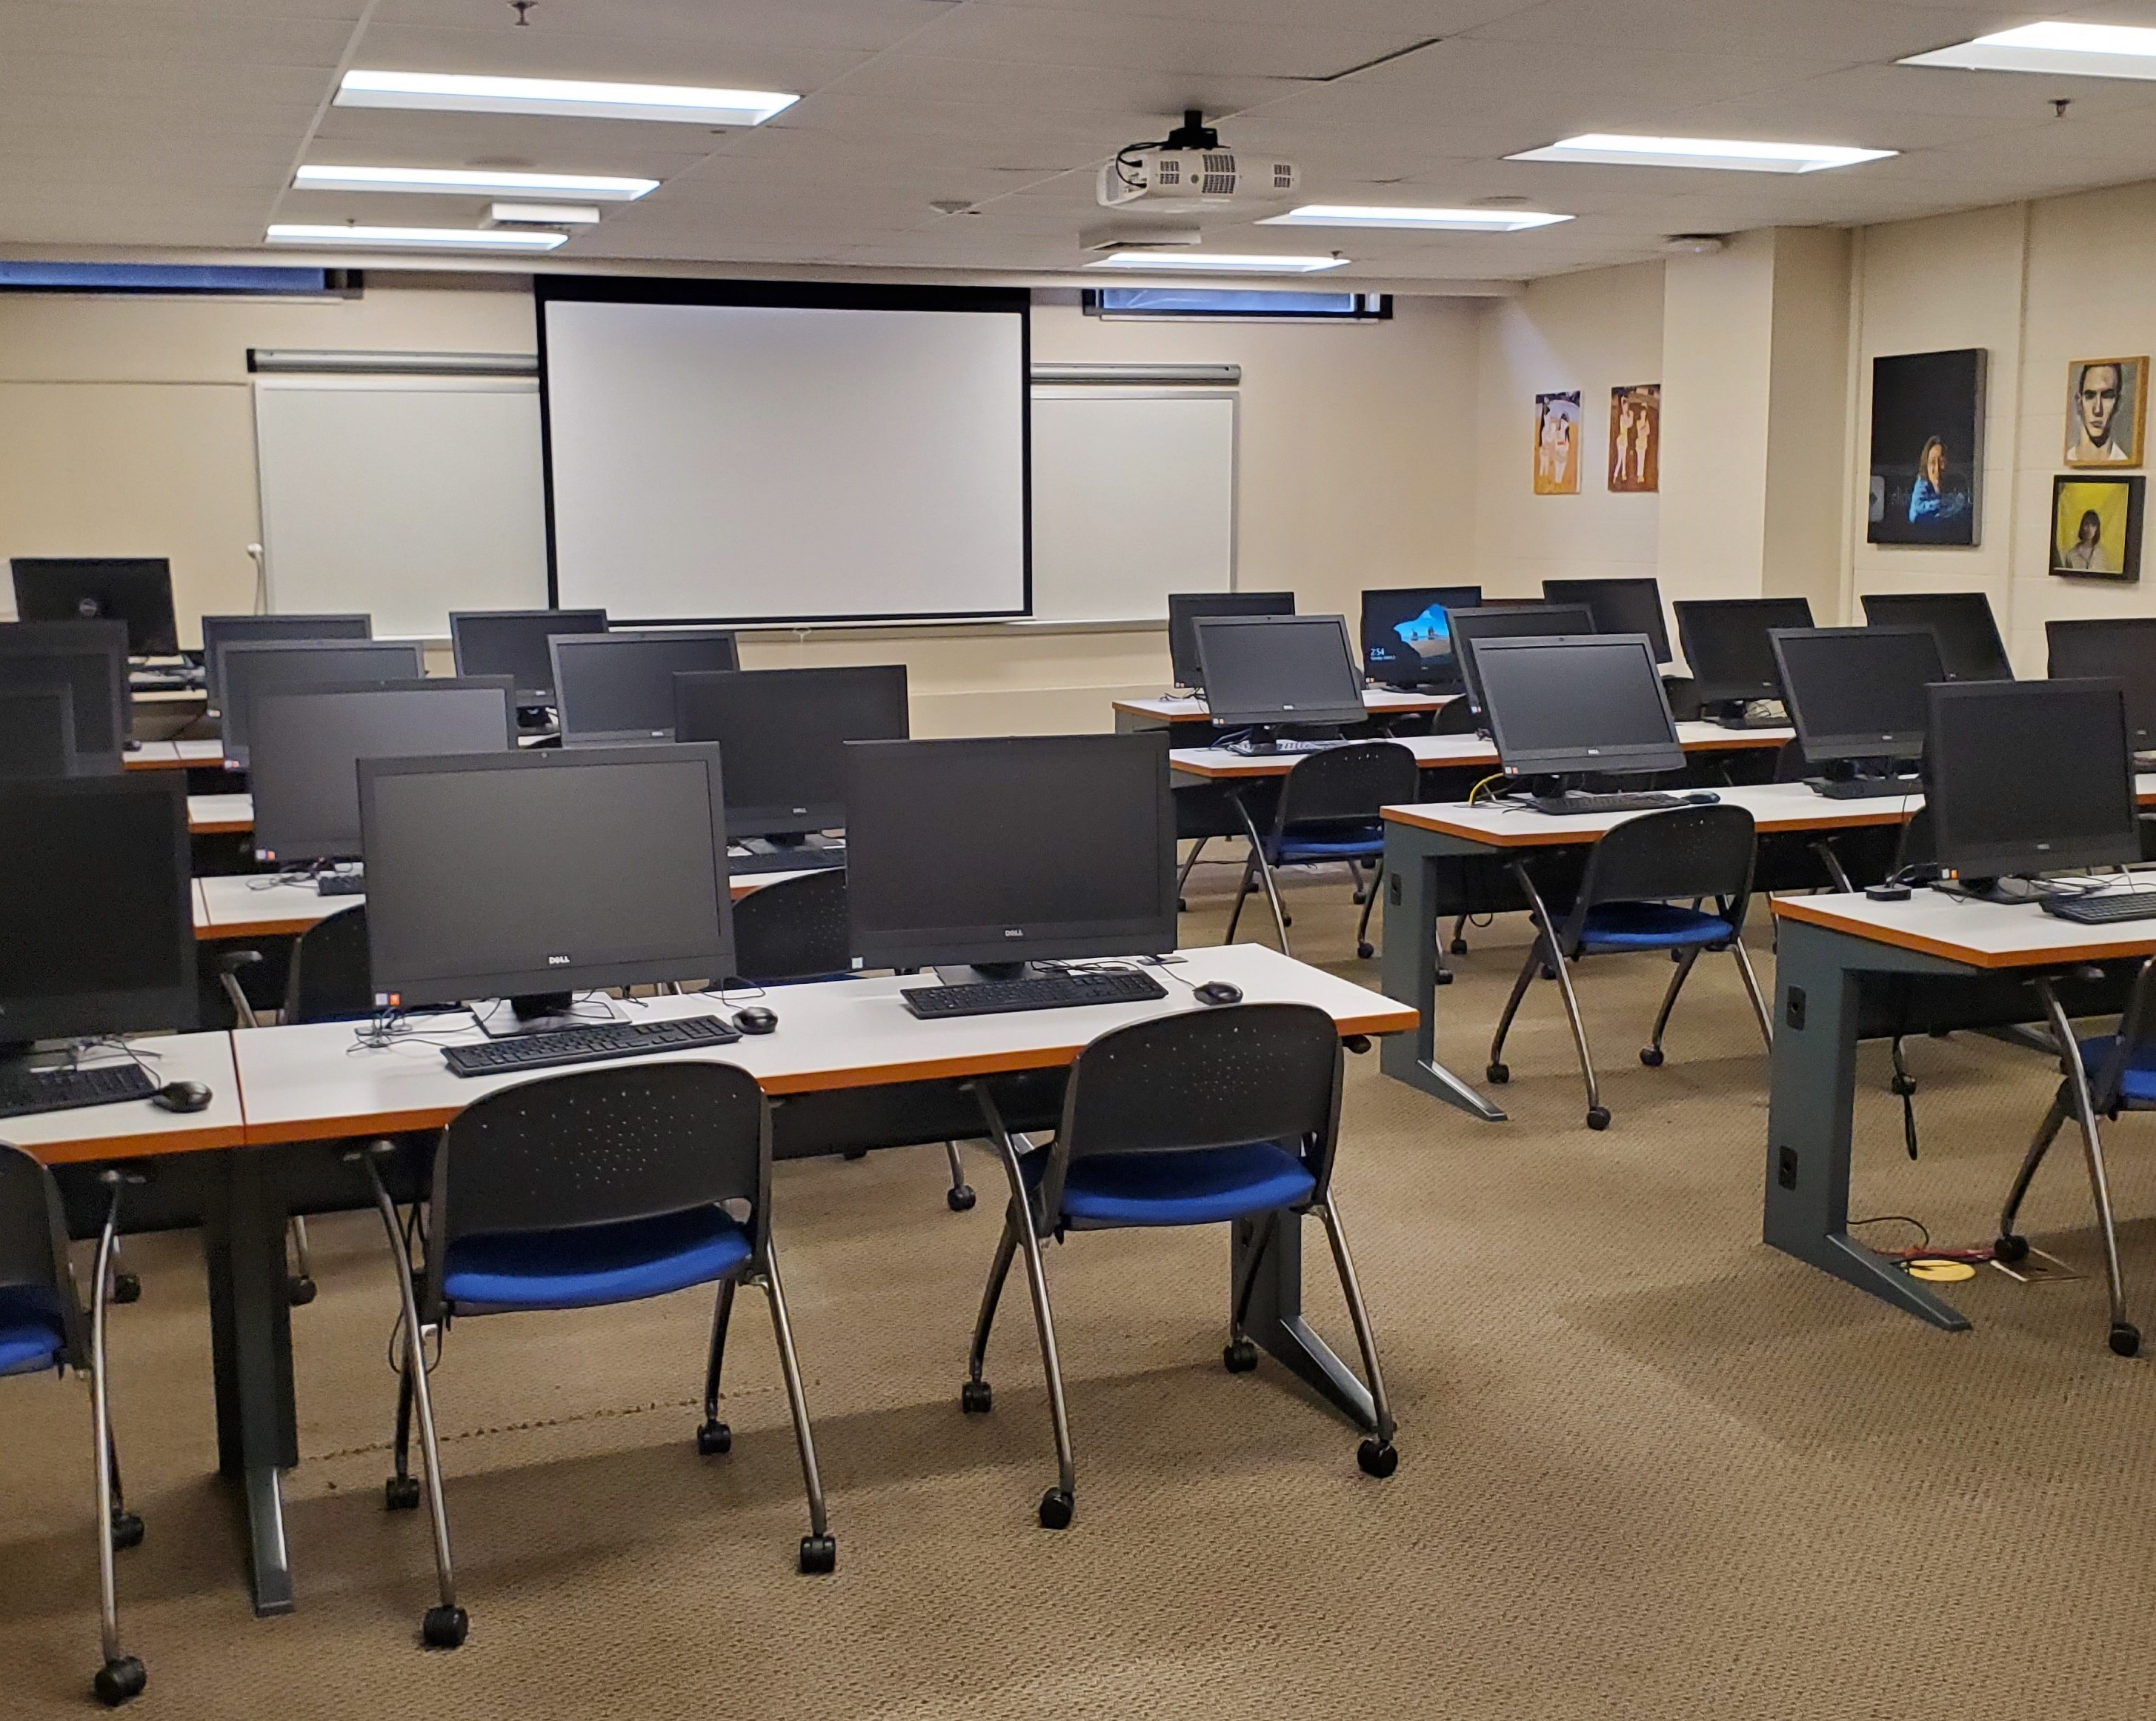 Image of basement computer lab